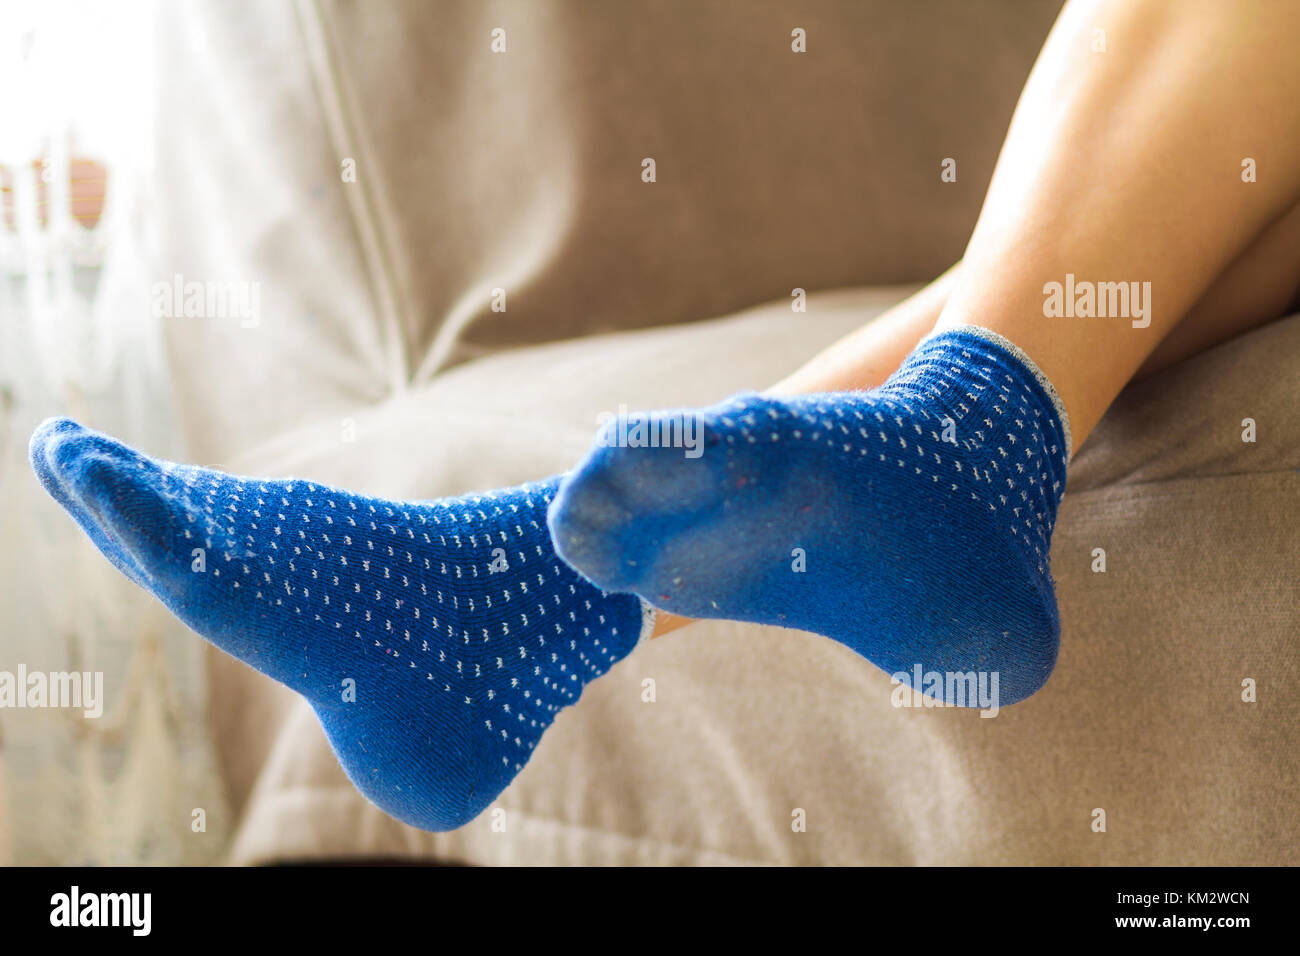 Woman Feet In Blue Socks Relaxing And Comfort Holiday Concept